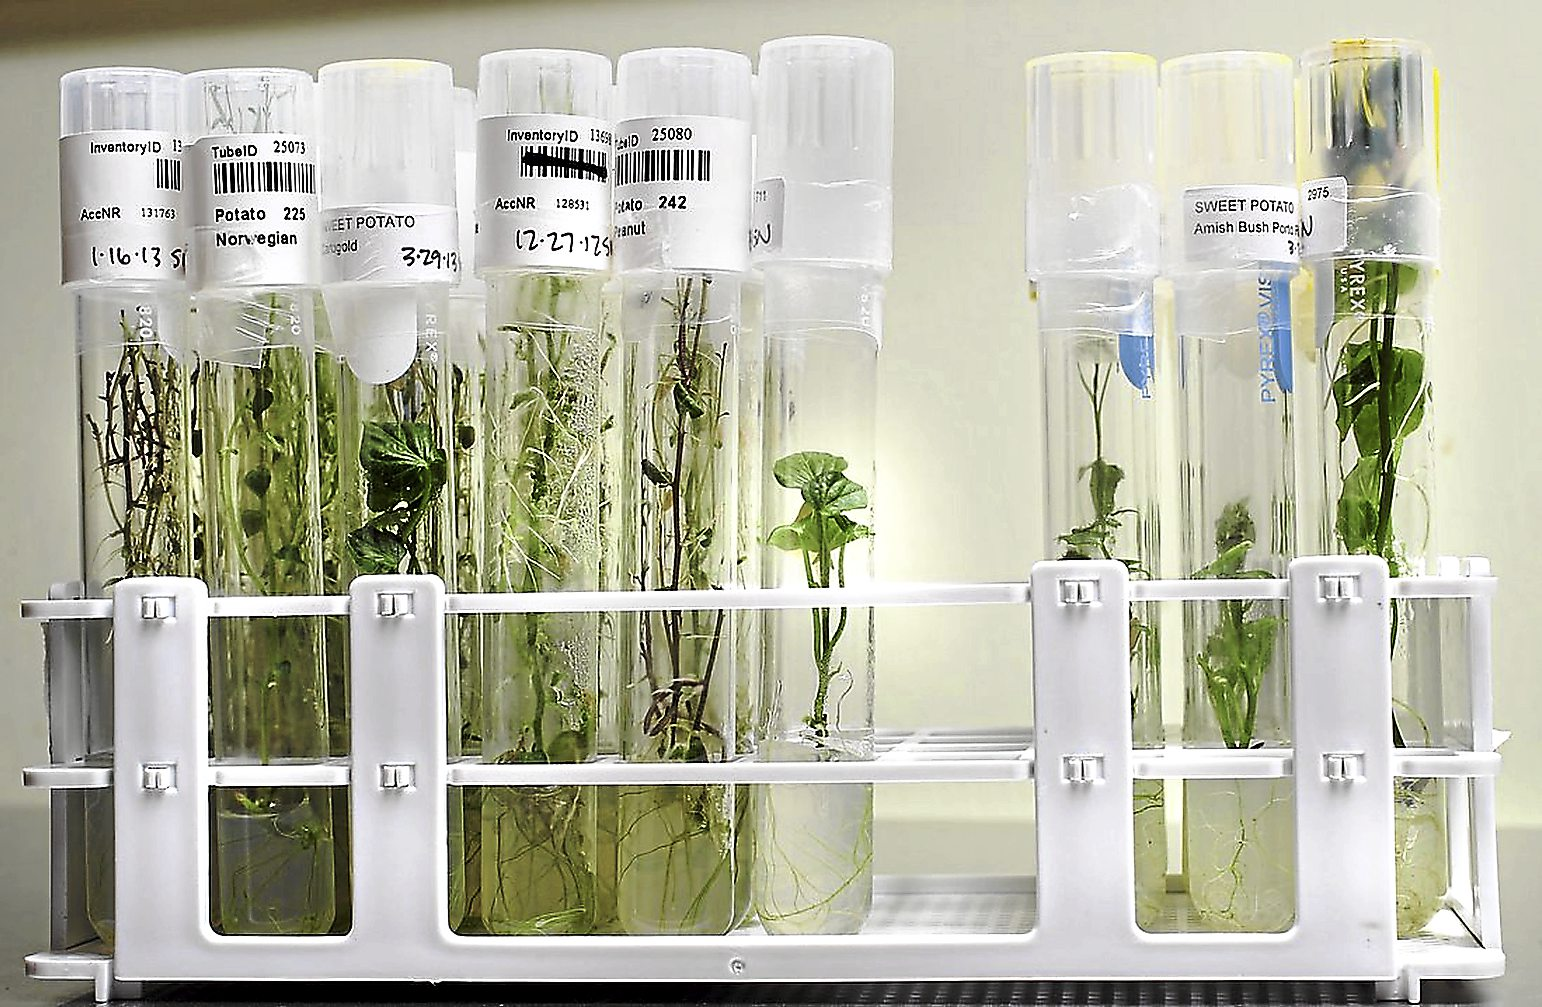 Seed Savers Exchange maintains a potato collection in tissue culture by growing tiny plants in test tubes to avoid virus and bacteria contamination.